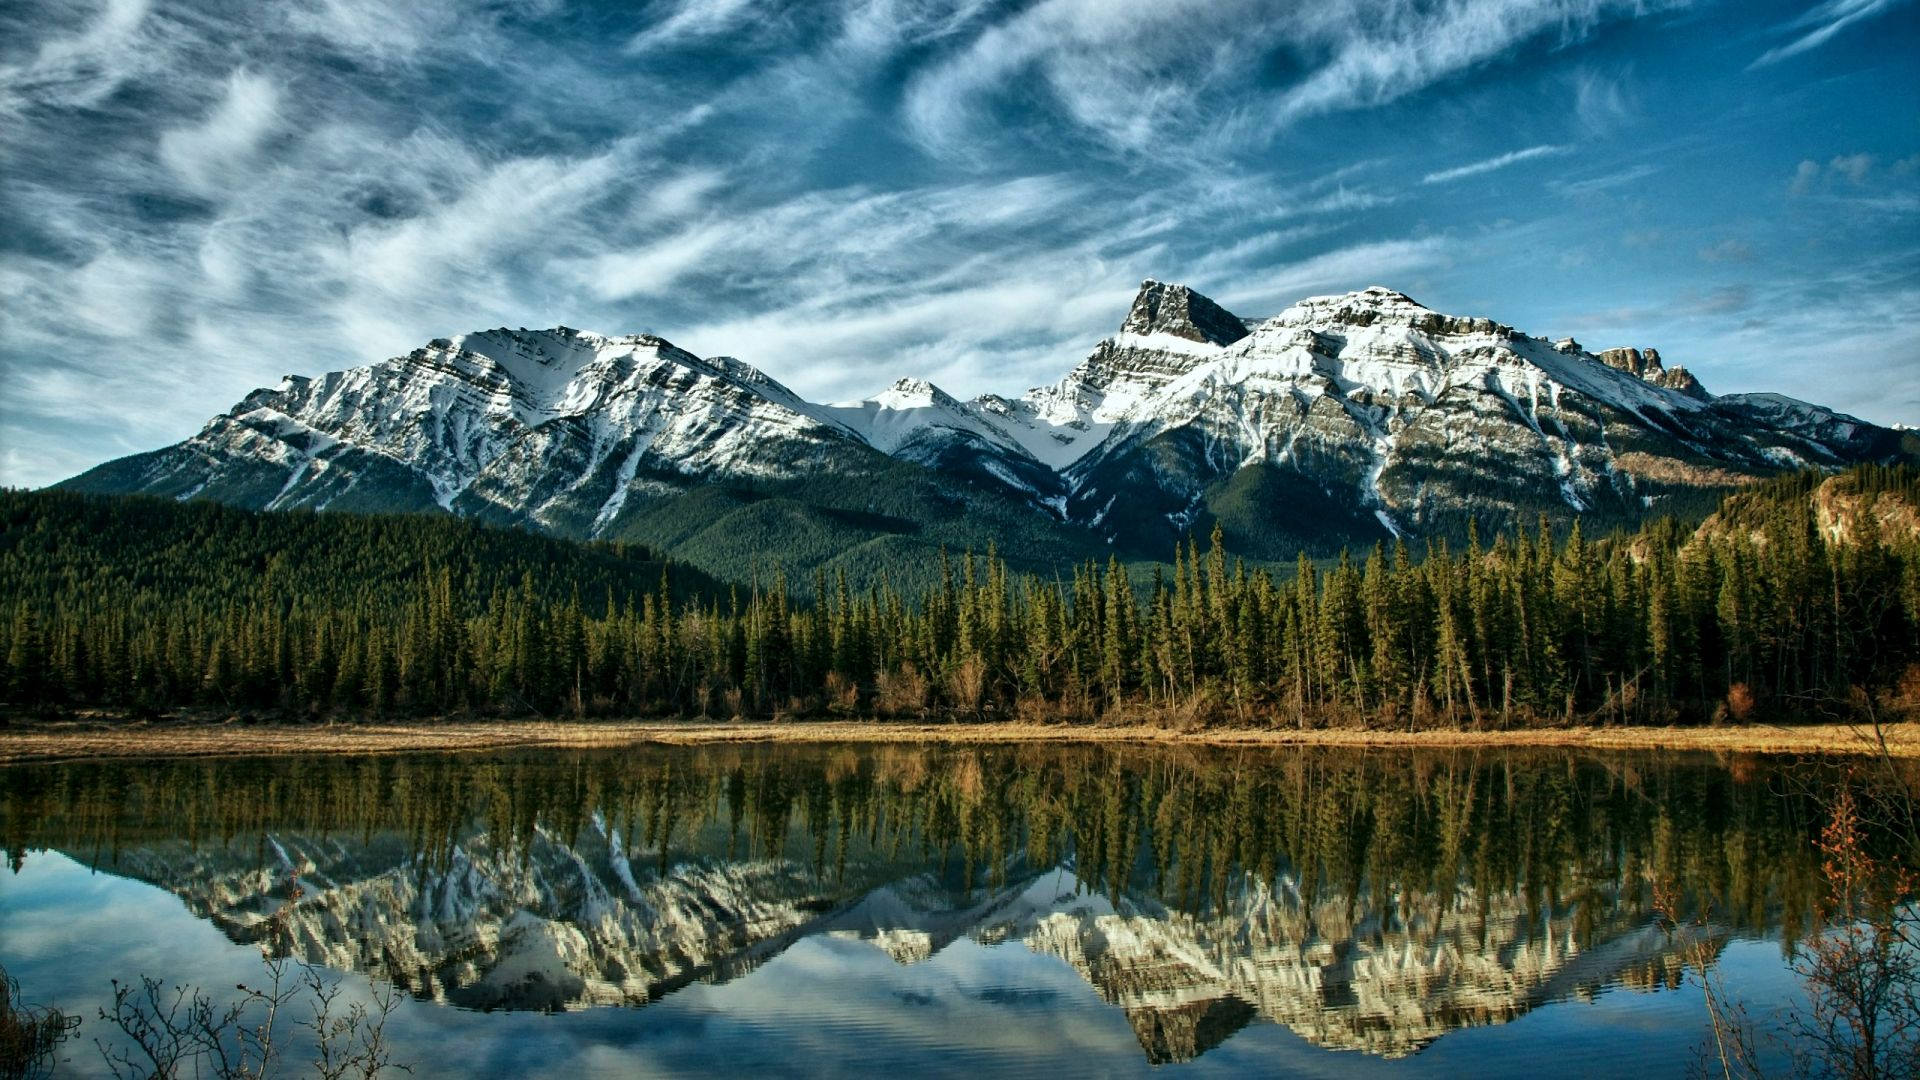 Canada Wallpapers: Find Best Latest Canada Wallpapers In